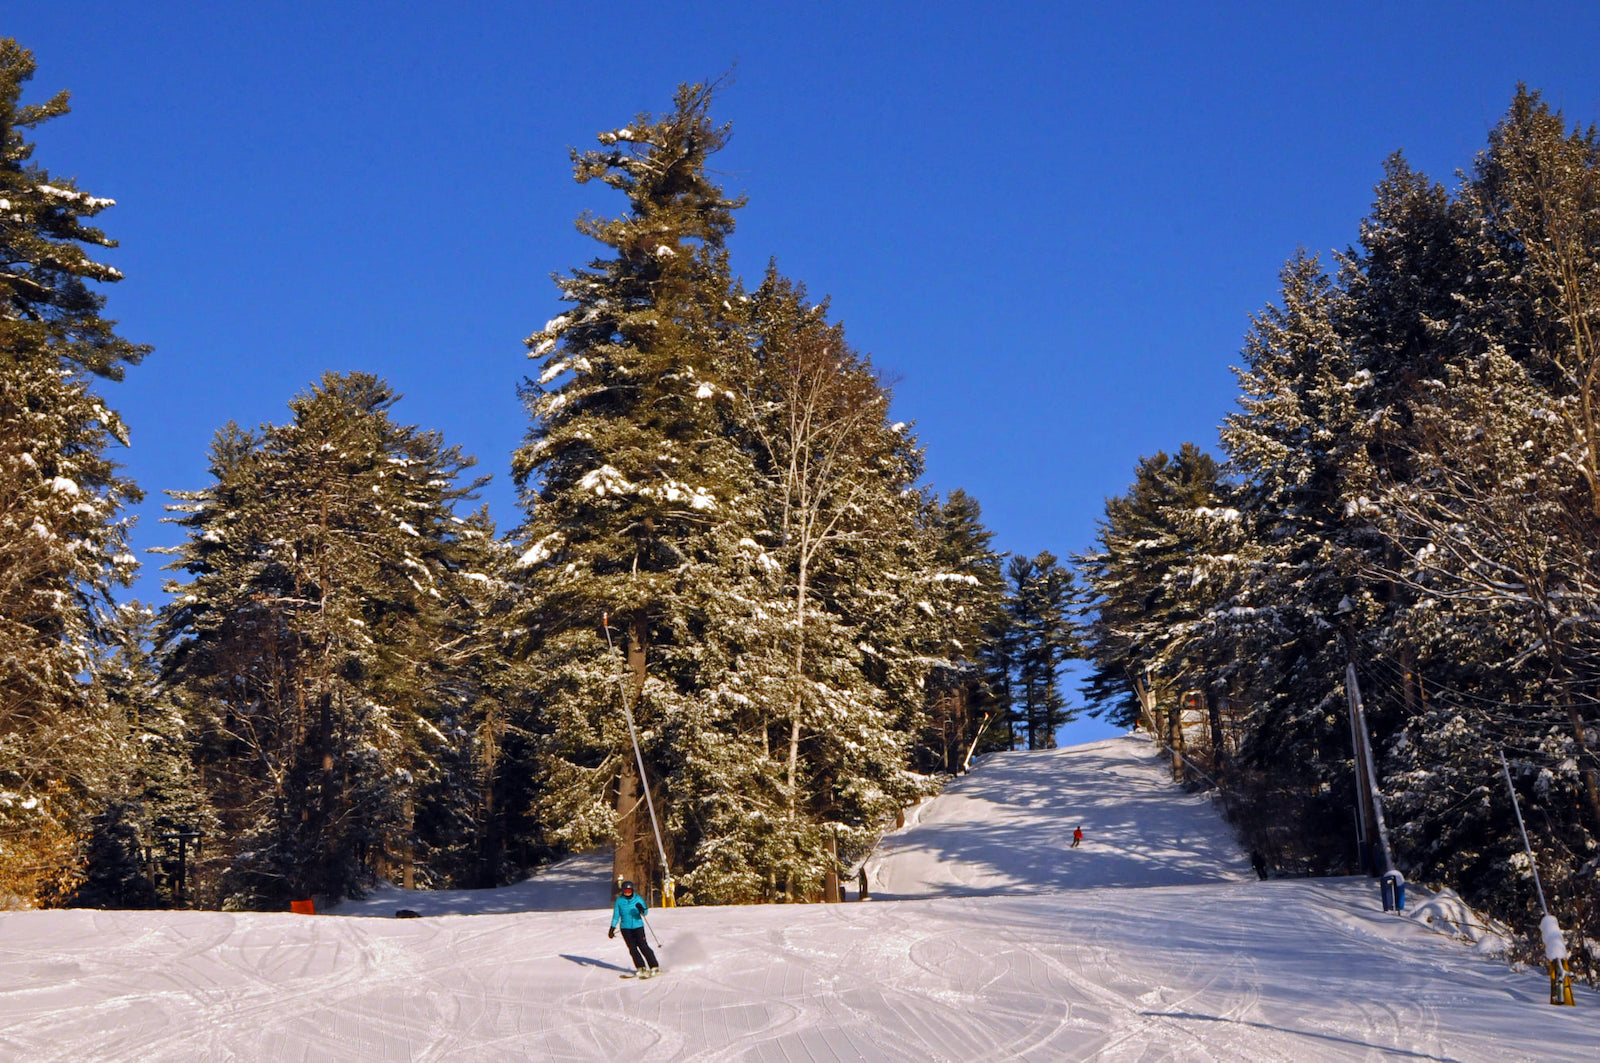 Image of a skier at King Pine Ski Area in New Hampshire on a bluebird day